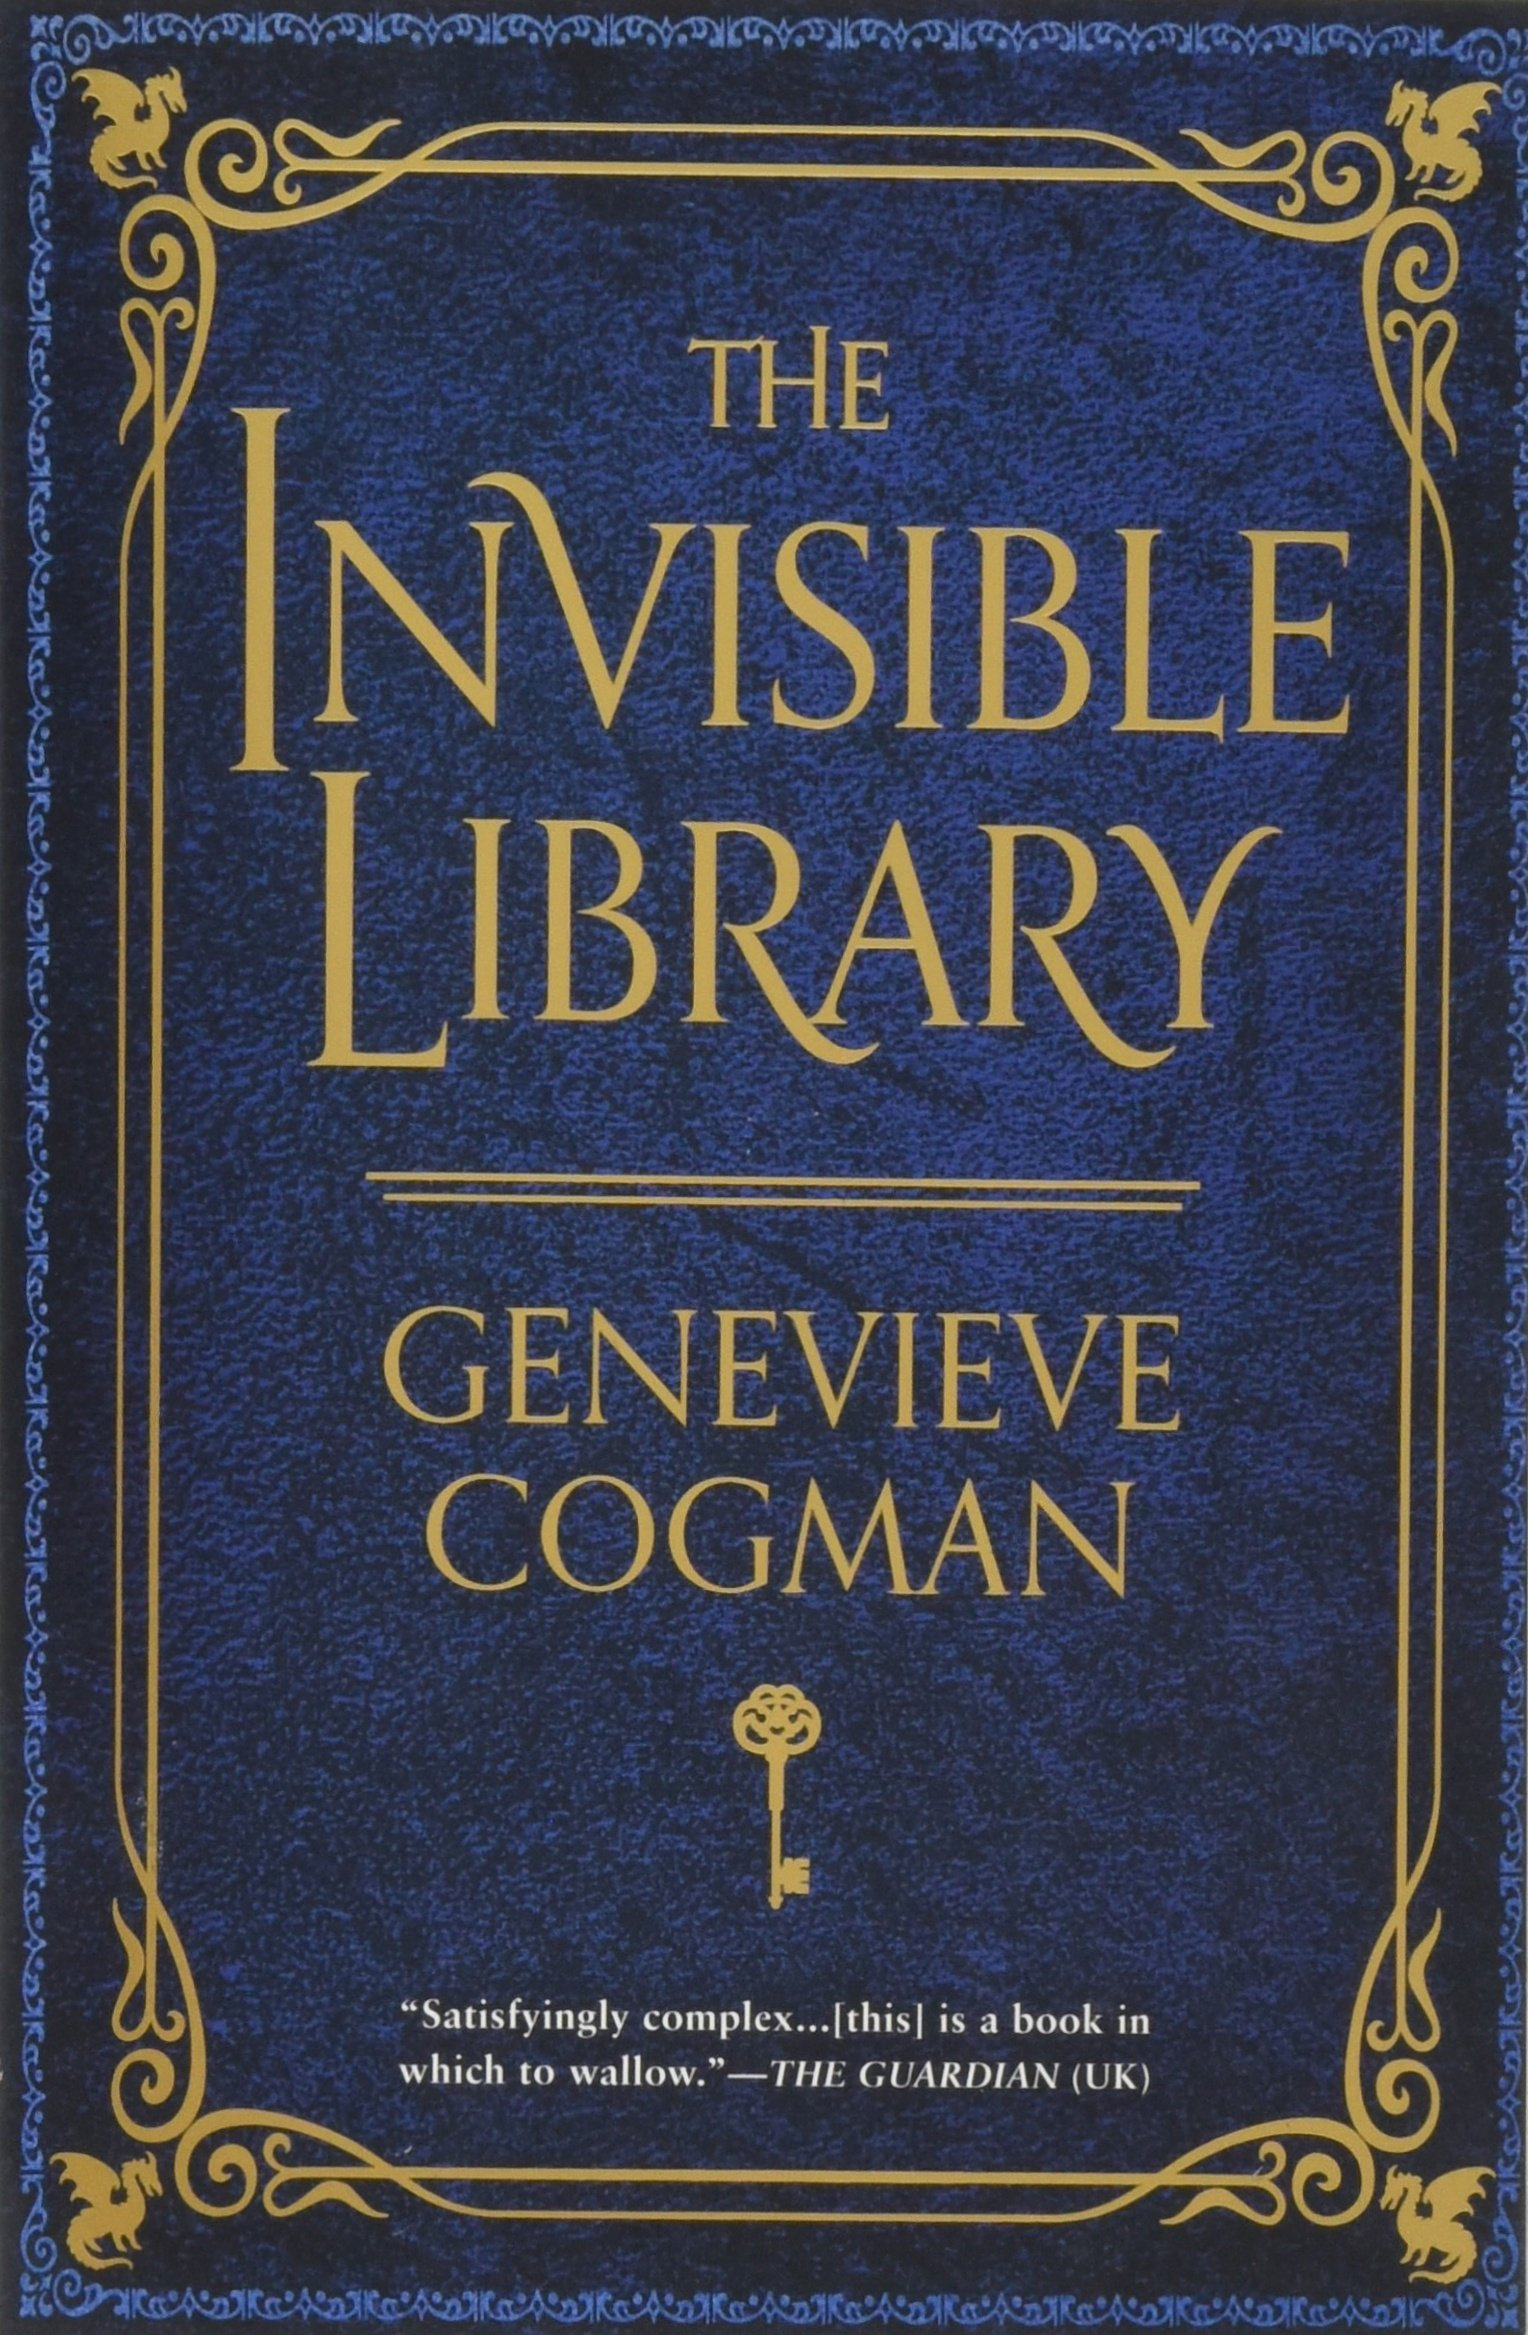 Image result for the invisible library